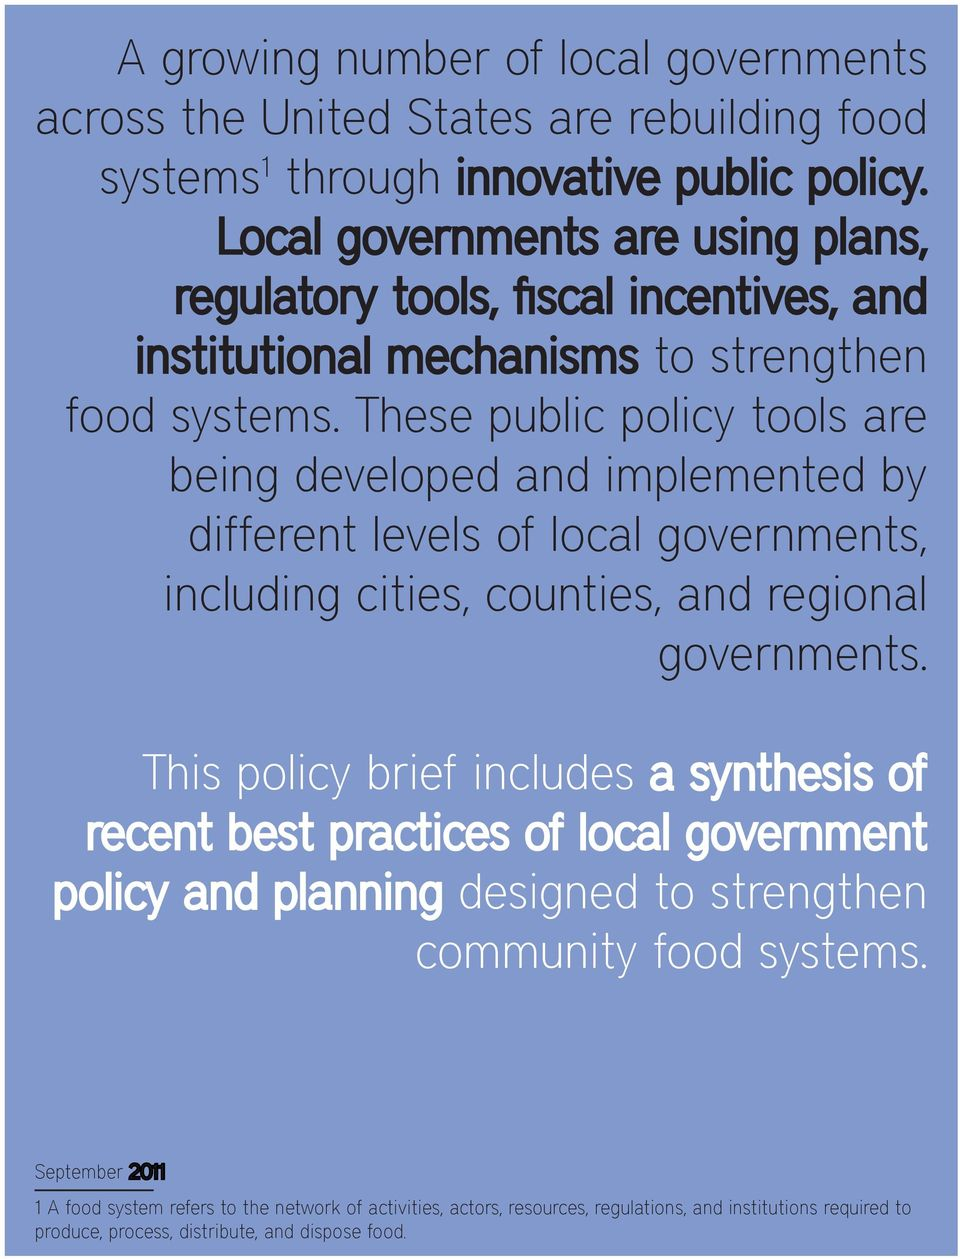 These public policy tools are being developed and implemented by different levels of local governments, including cities, counties, and regional governments.